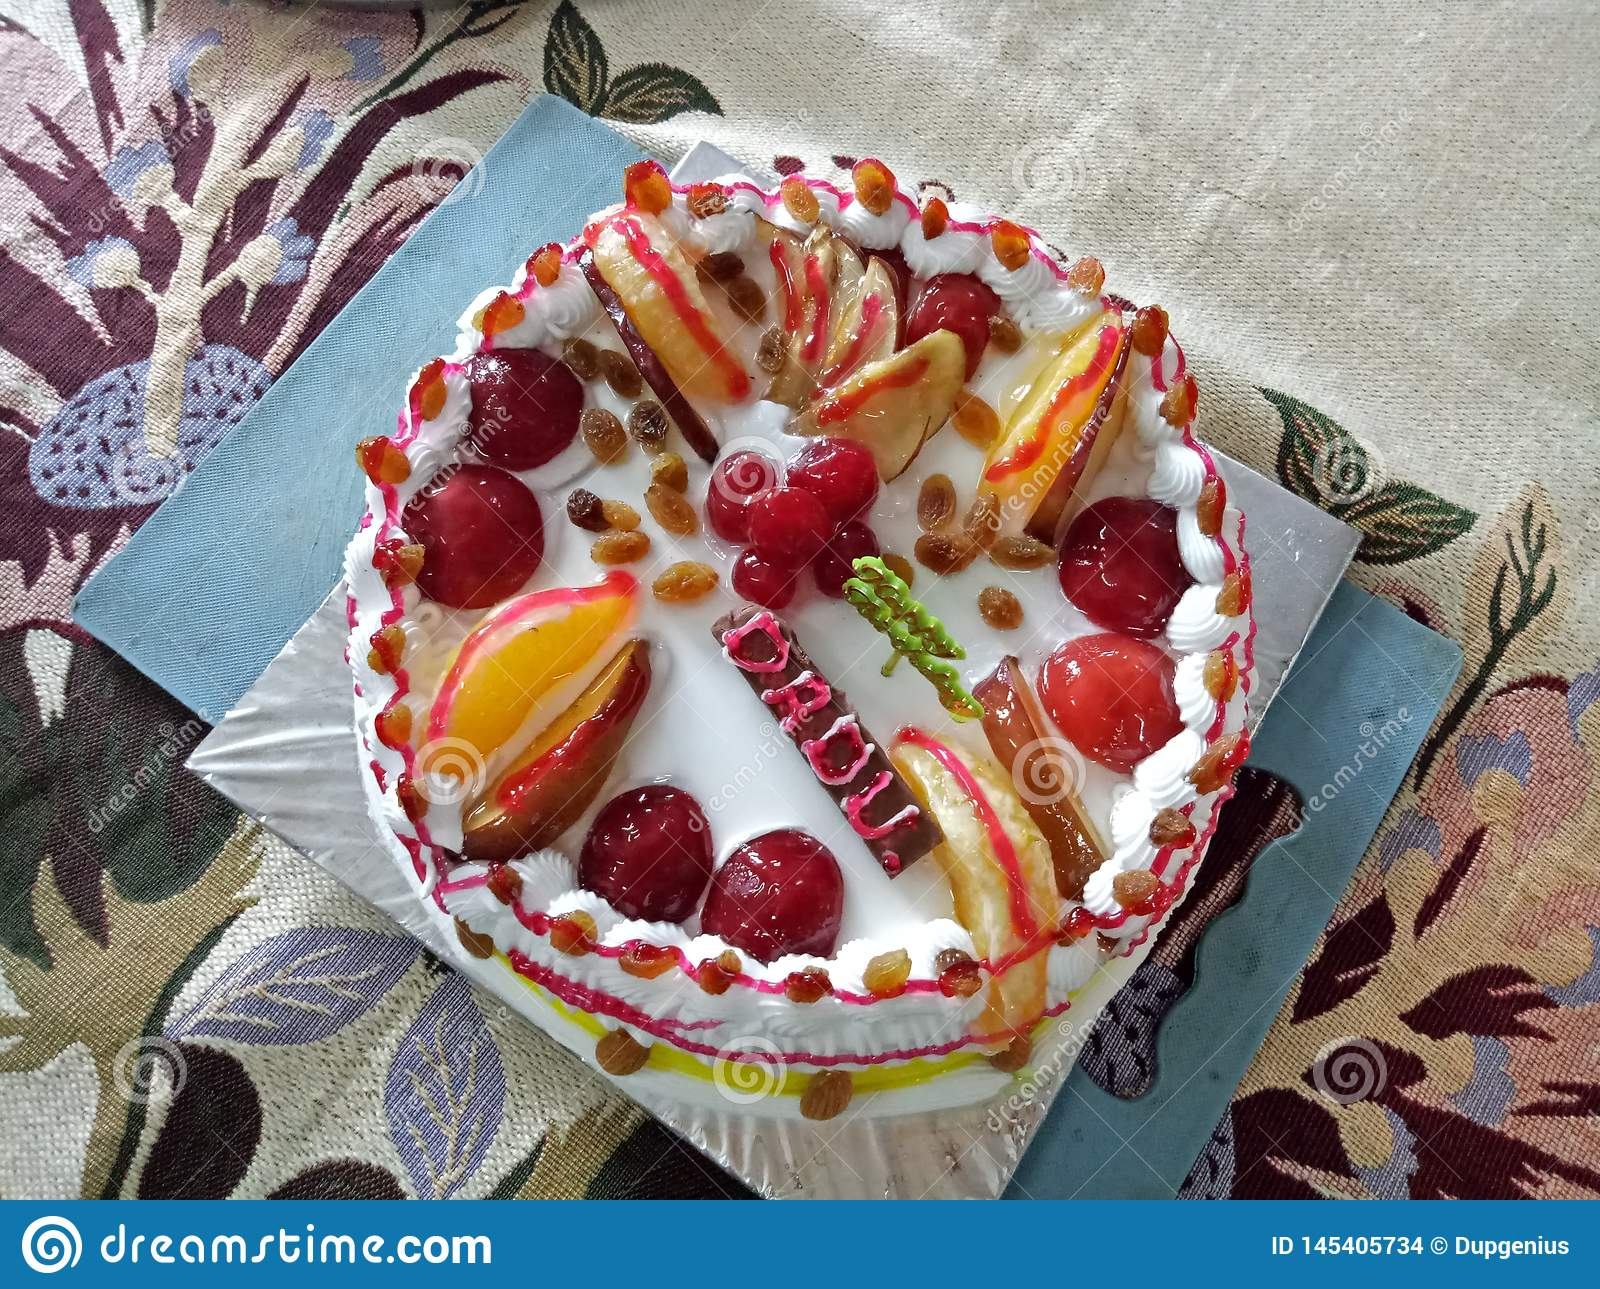 Cake for brothers